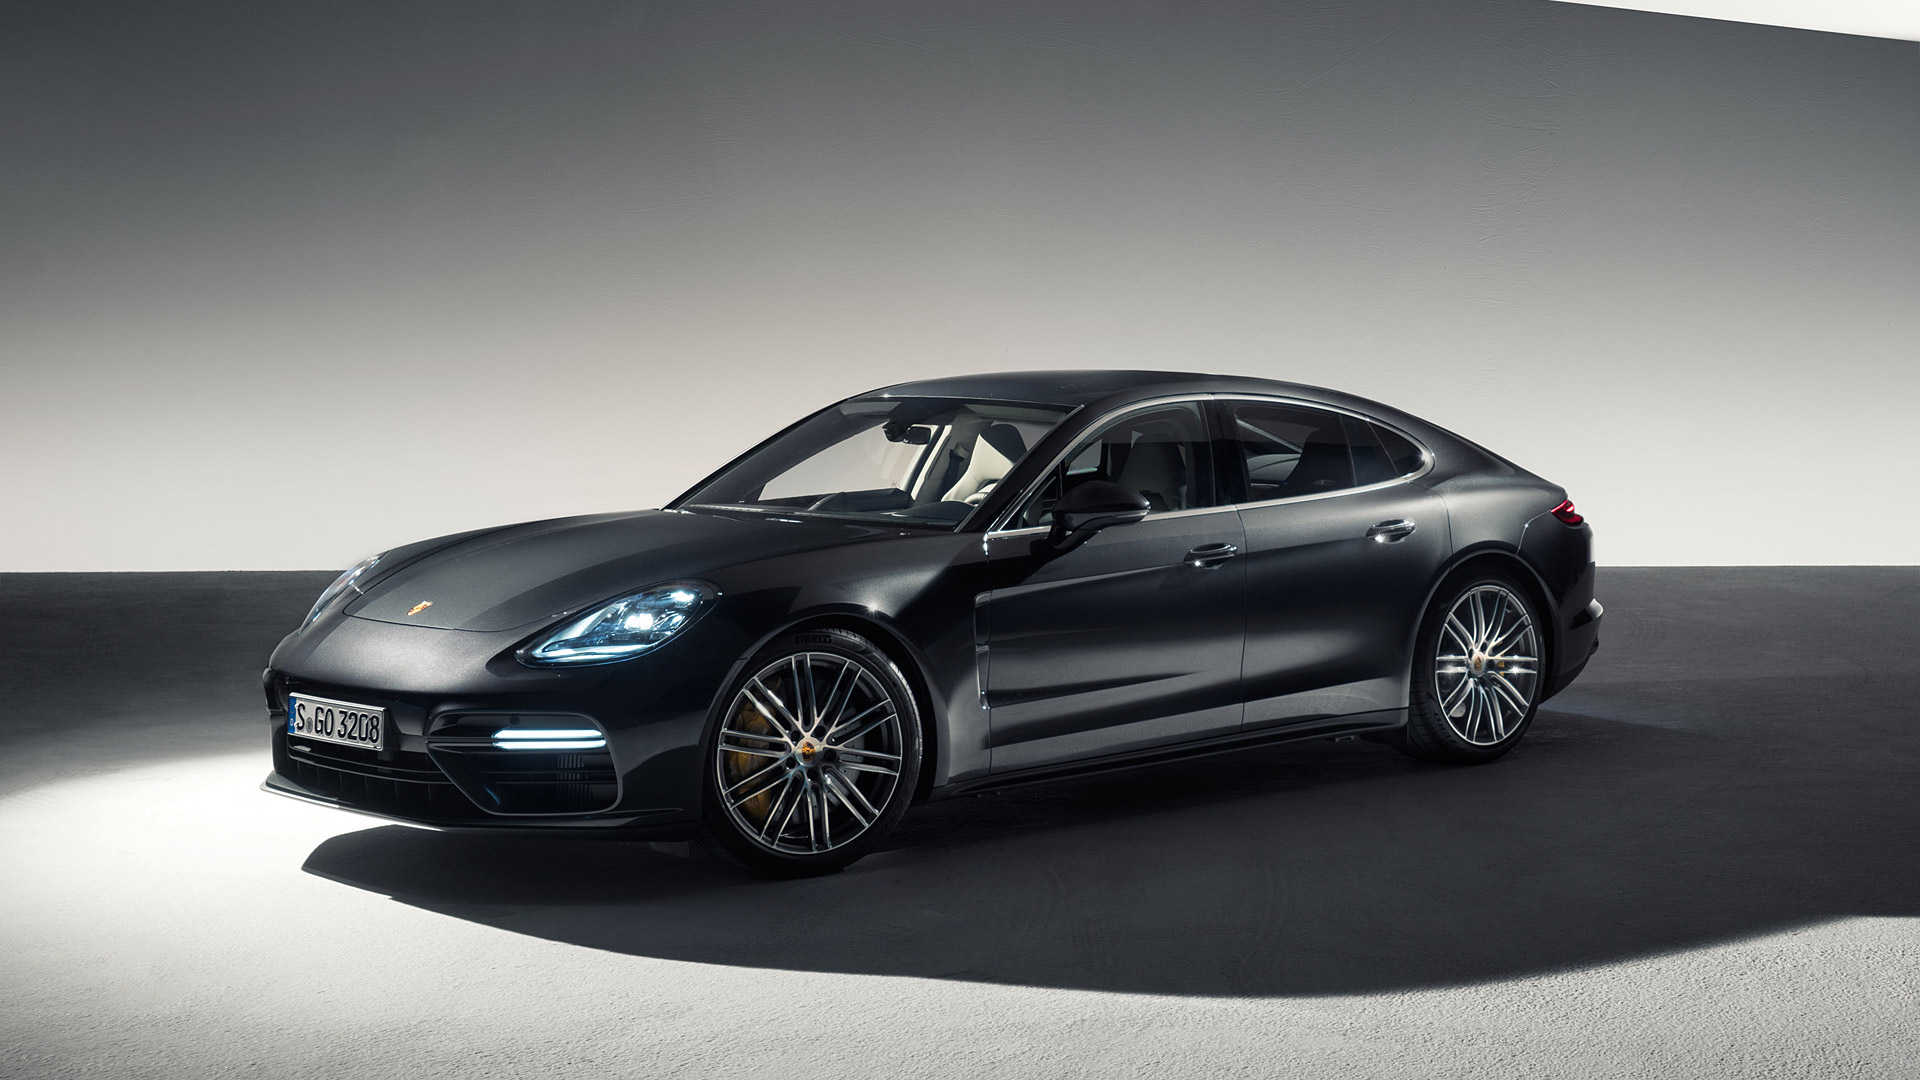 The All New 2017 Porsche Panamera Emotoautocom